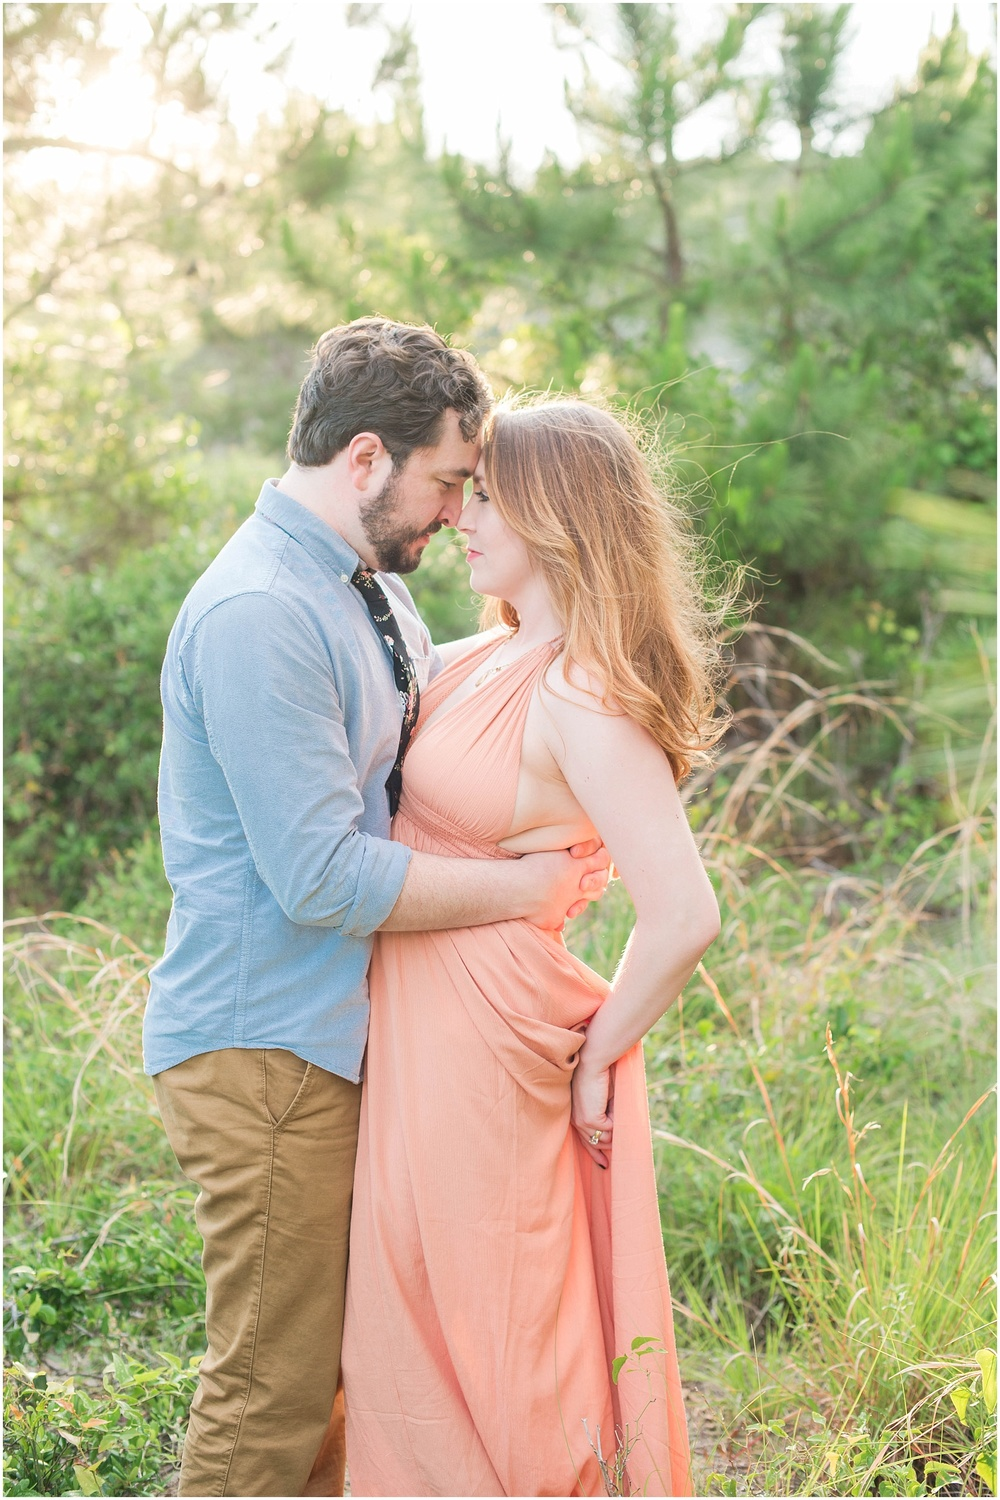 Hannah Leigh Photography Kiawah Island Anniversary Session_0387.jpg